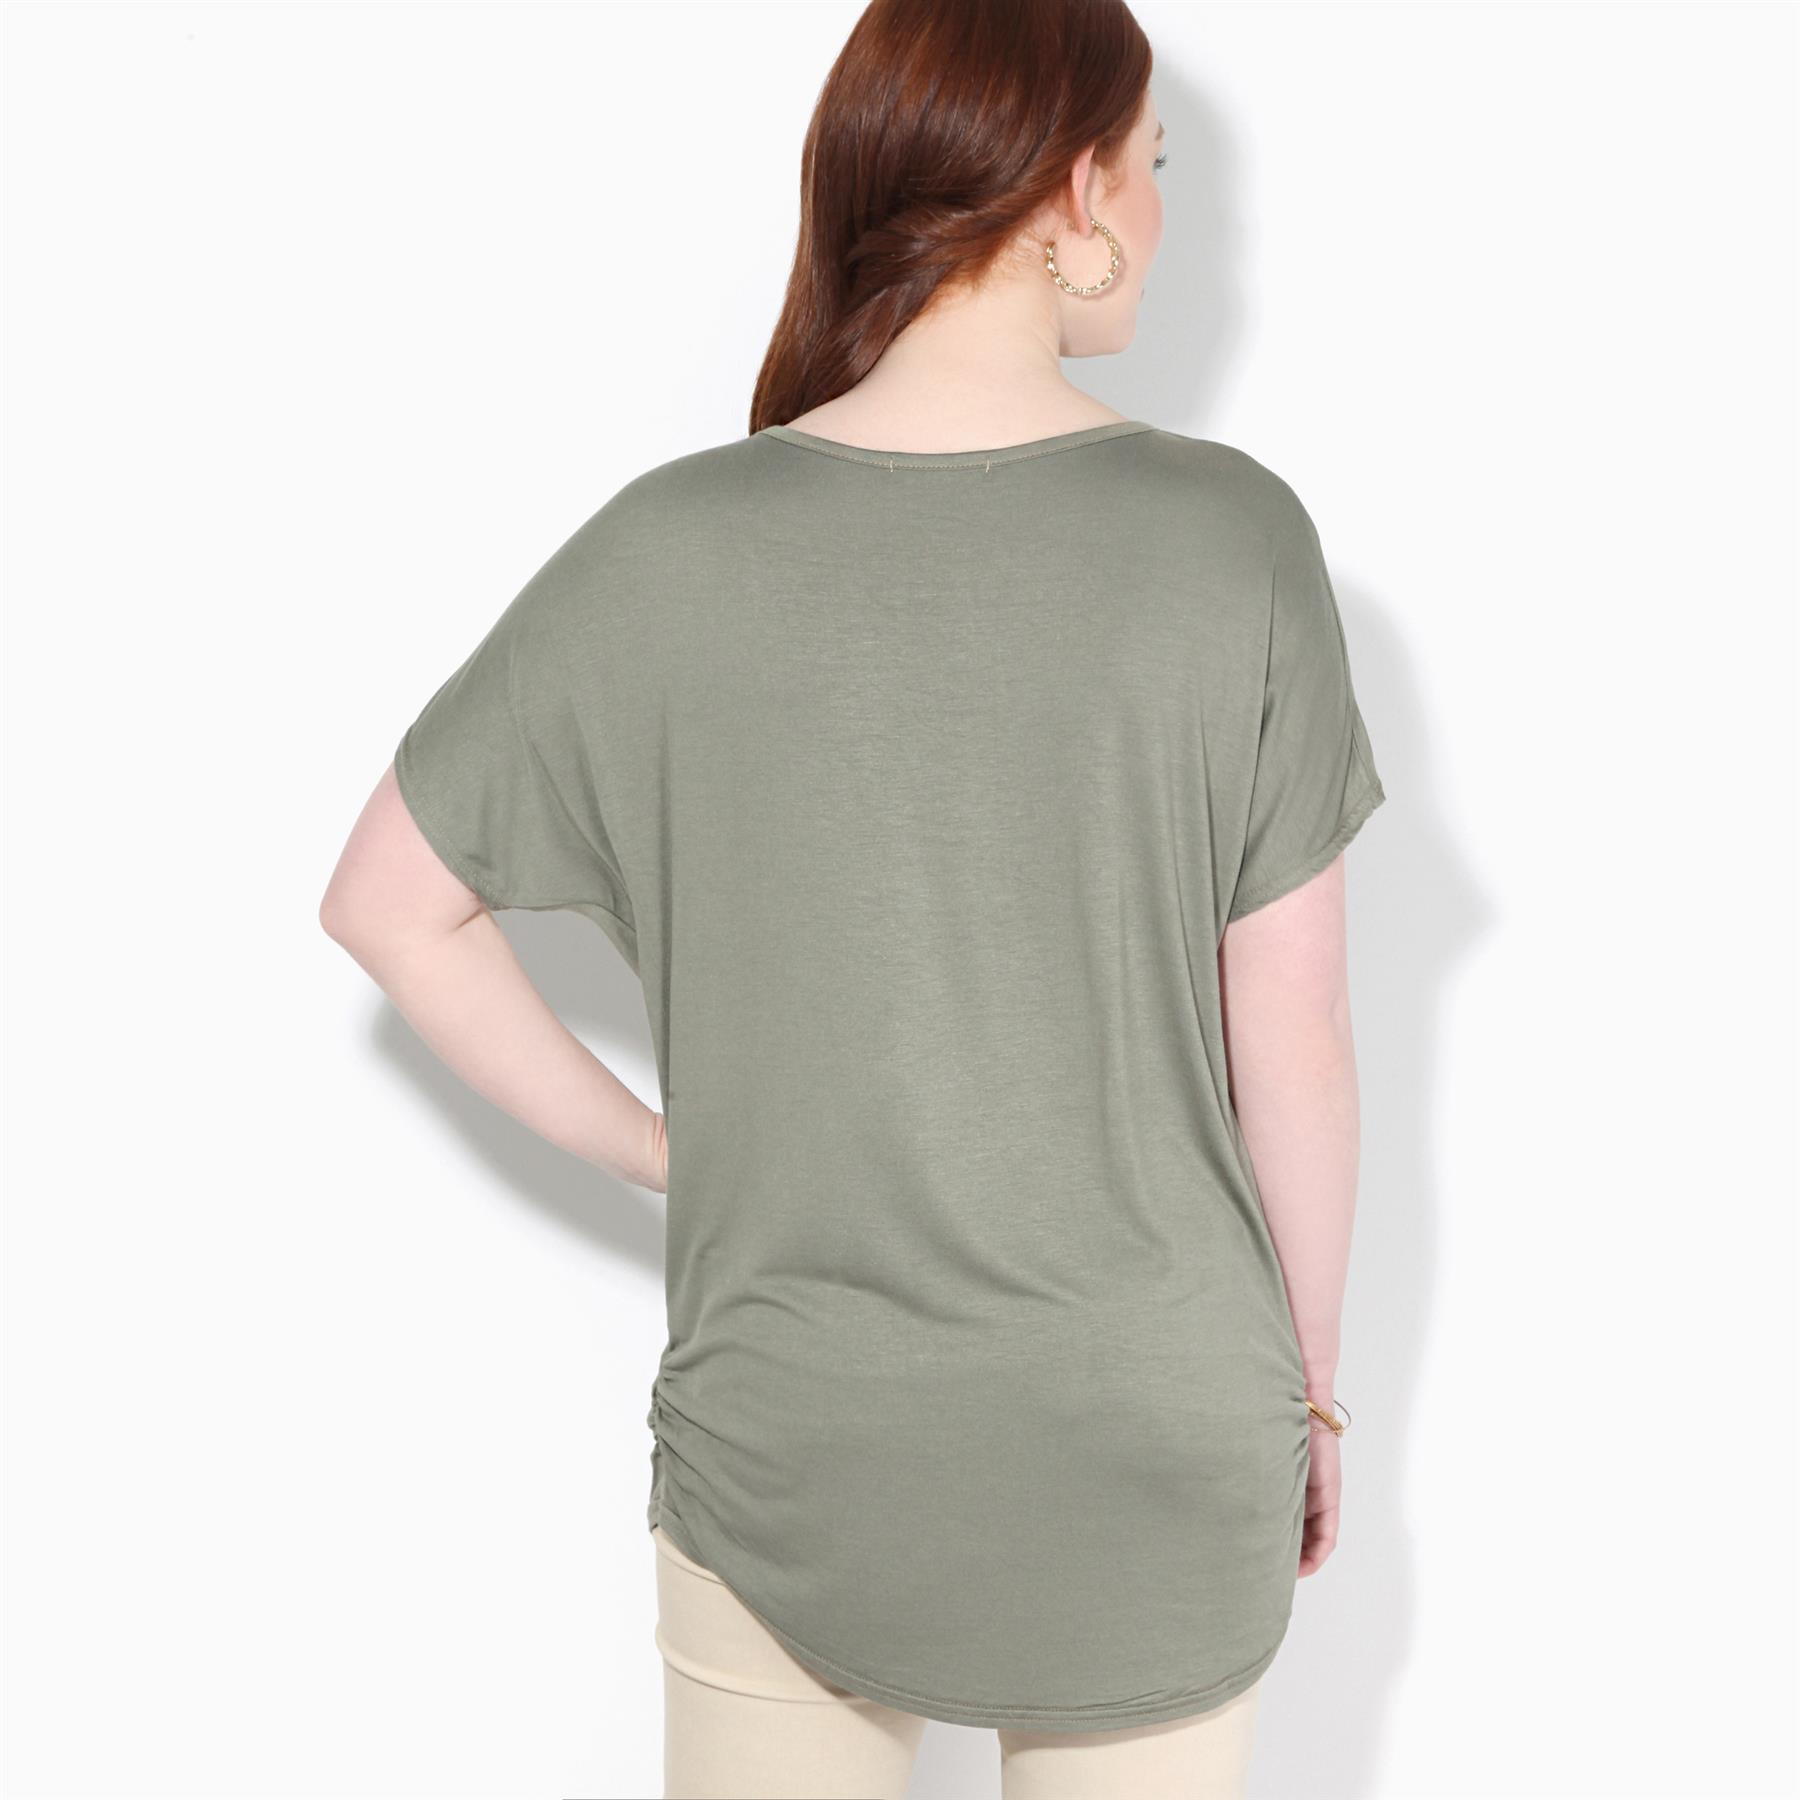 Womens-Loose-Batwing-T-Shirt-Ladies-Animal-Tunic-Blouse-Oversized-Long-Line-Top thumbnail 9